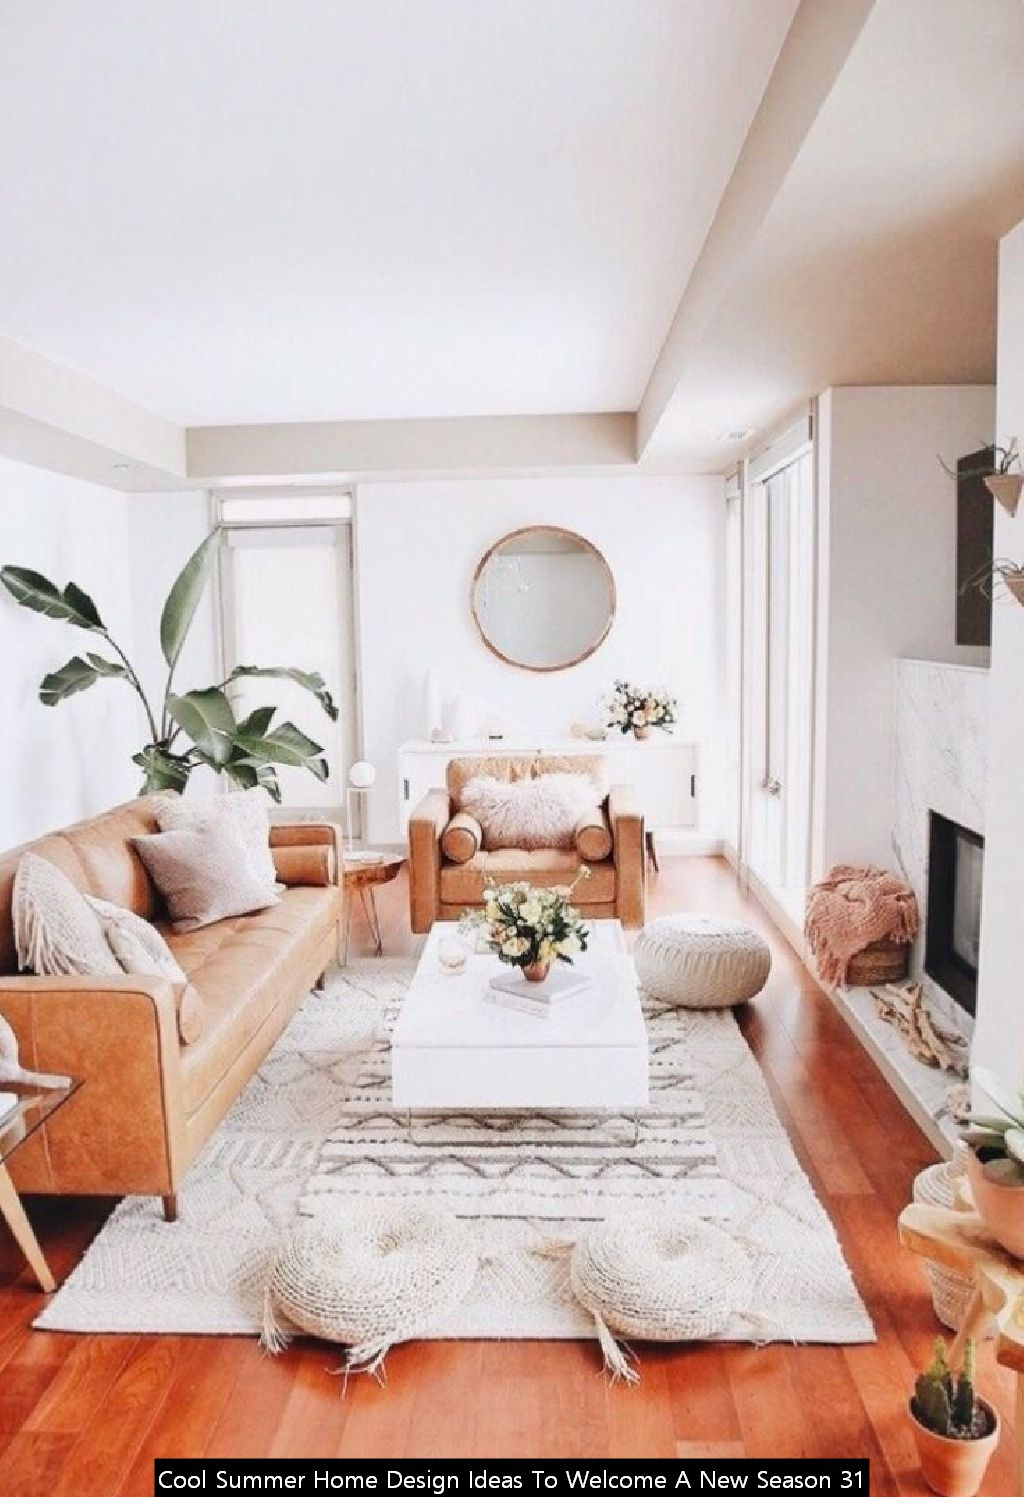 Cool Summer Home Design Ideas To Welcome A New Season 31